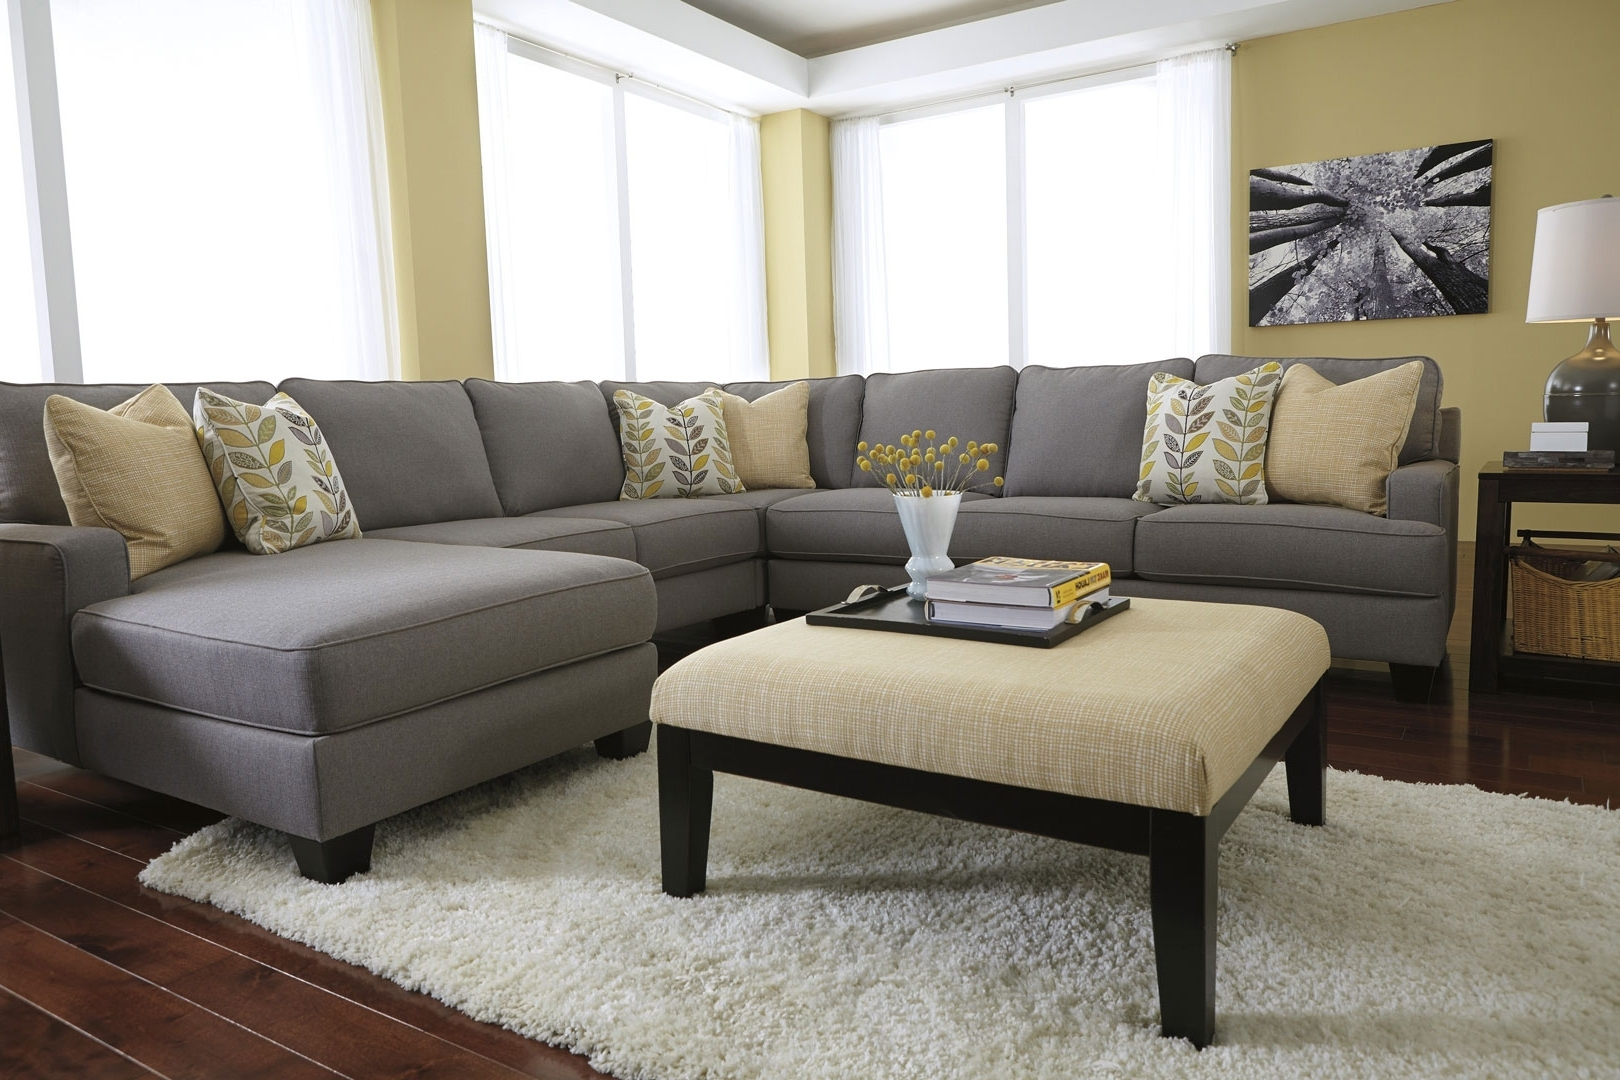 Portland Sectional Sofas For Most Recently Released Sectional Sofa (View 6 of 20)